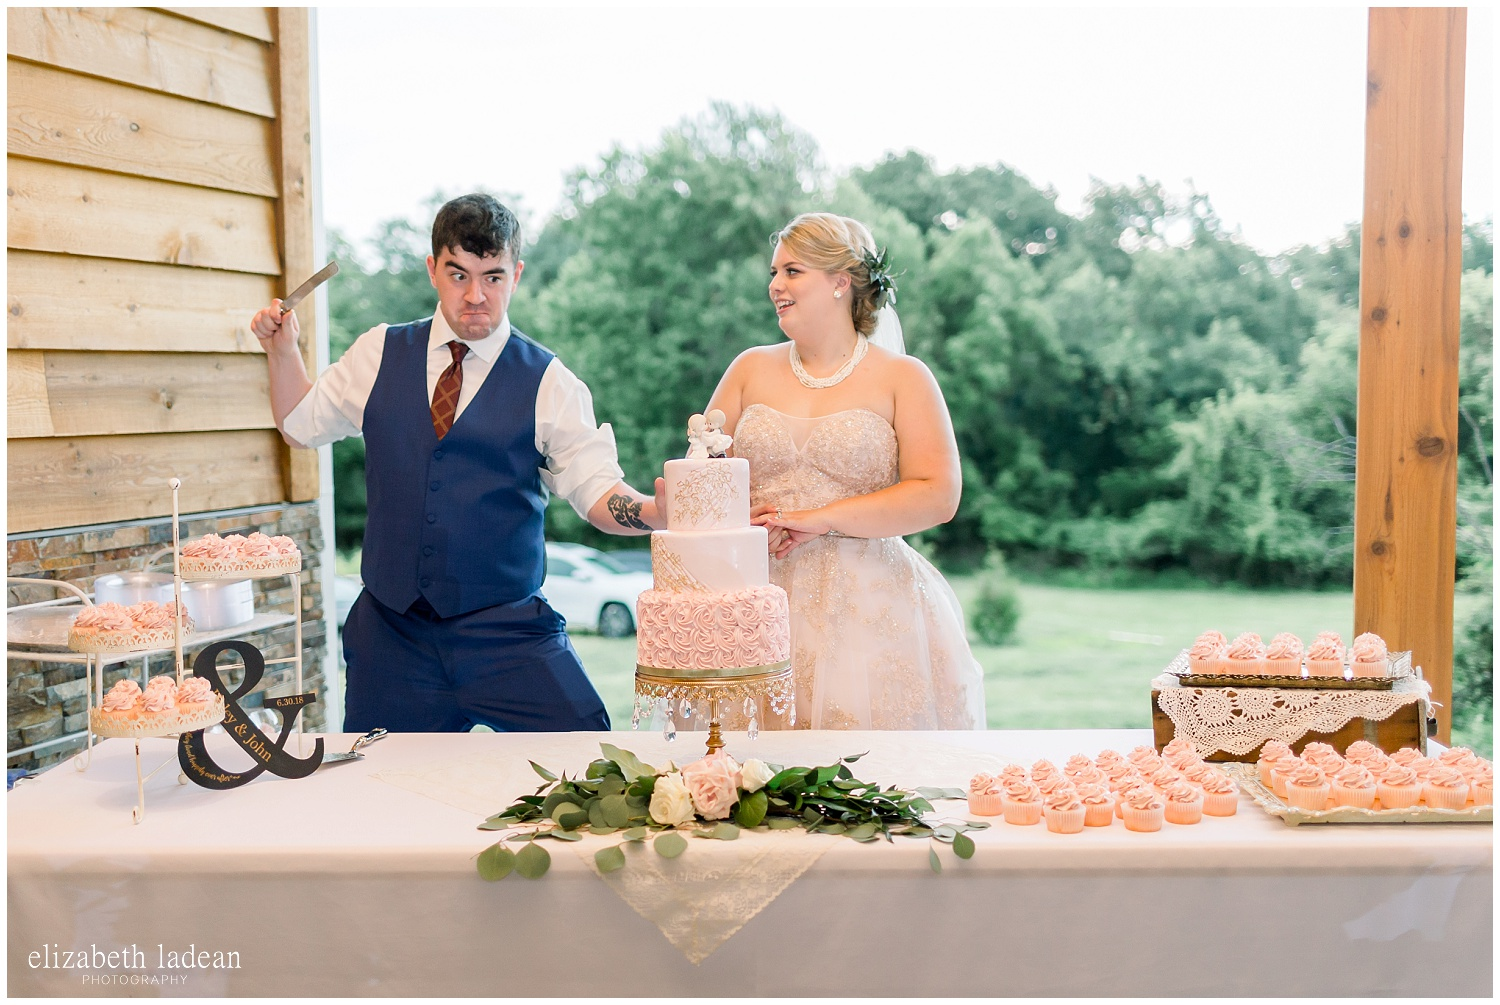 -behind-the-scenes-of-a-wedding-photographer-2018-elizabeth-ladean-photography-photo_3482.jpg